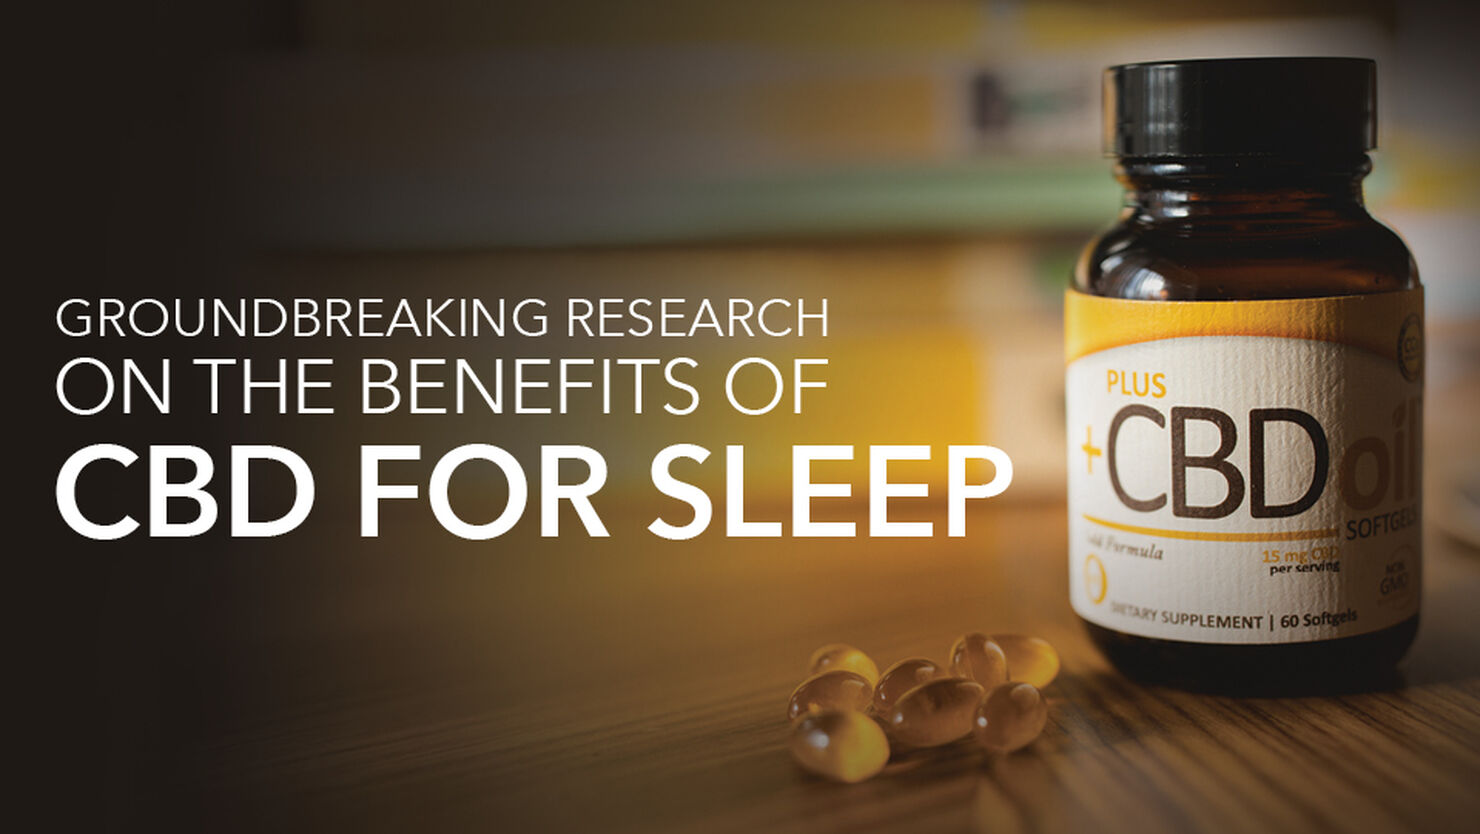 Groundbreaking Research on the Benefits of CBD for Sleep, Wellness, and Weight Loss